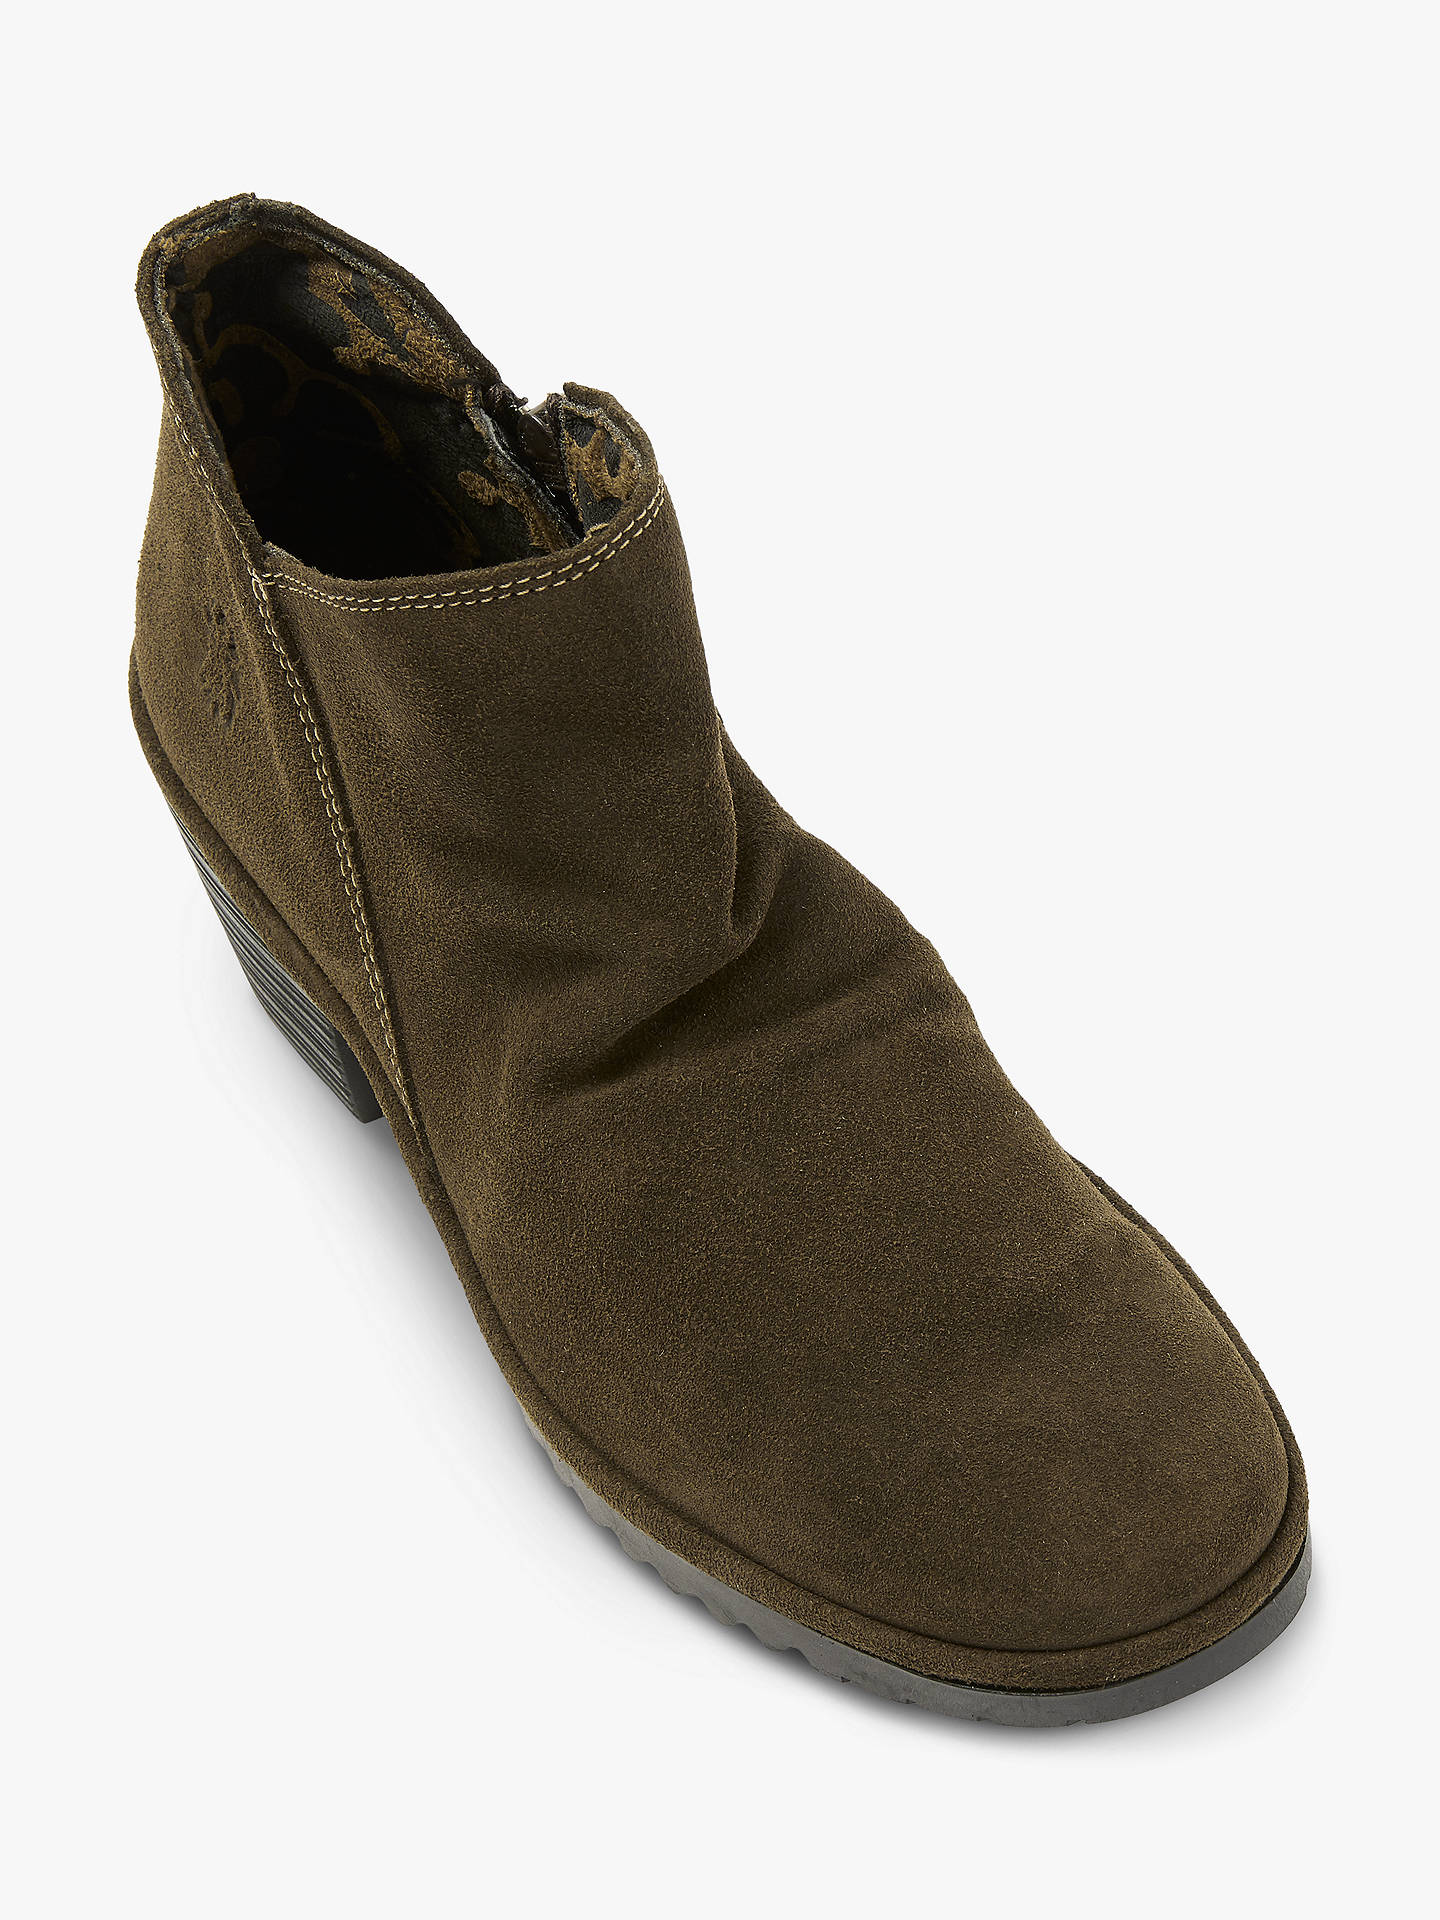 2fea19aca2c ... Buy Fly London WEZO890Fly Slip On Ankle Boots, Green Suede, 4 Online at  johnlewis